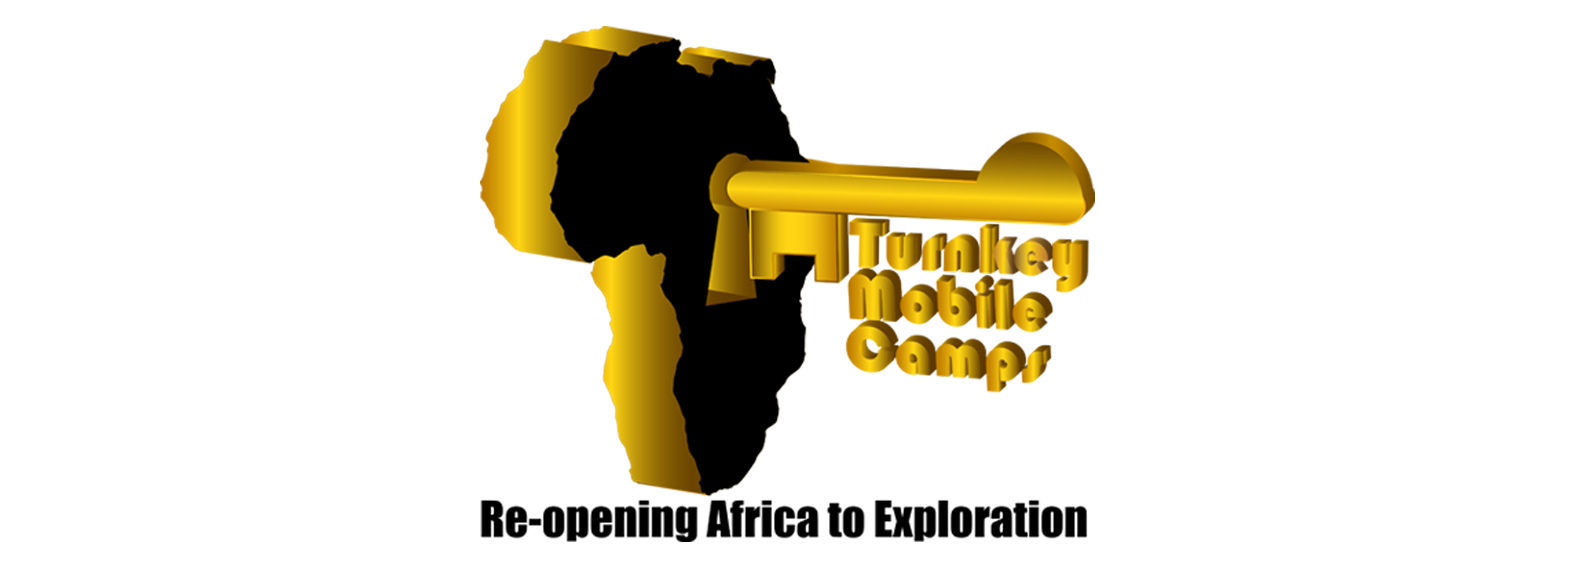 turnkey mobile camps logo